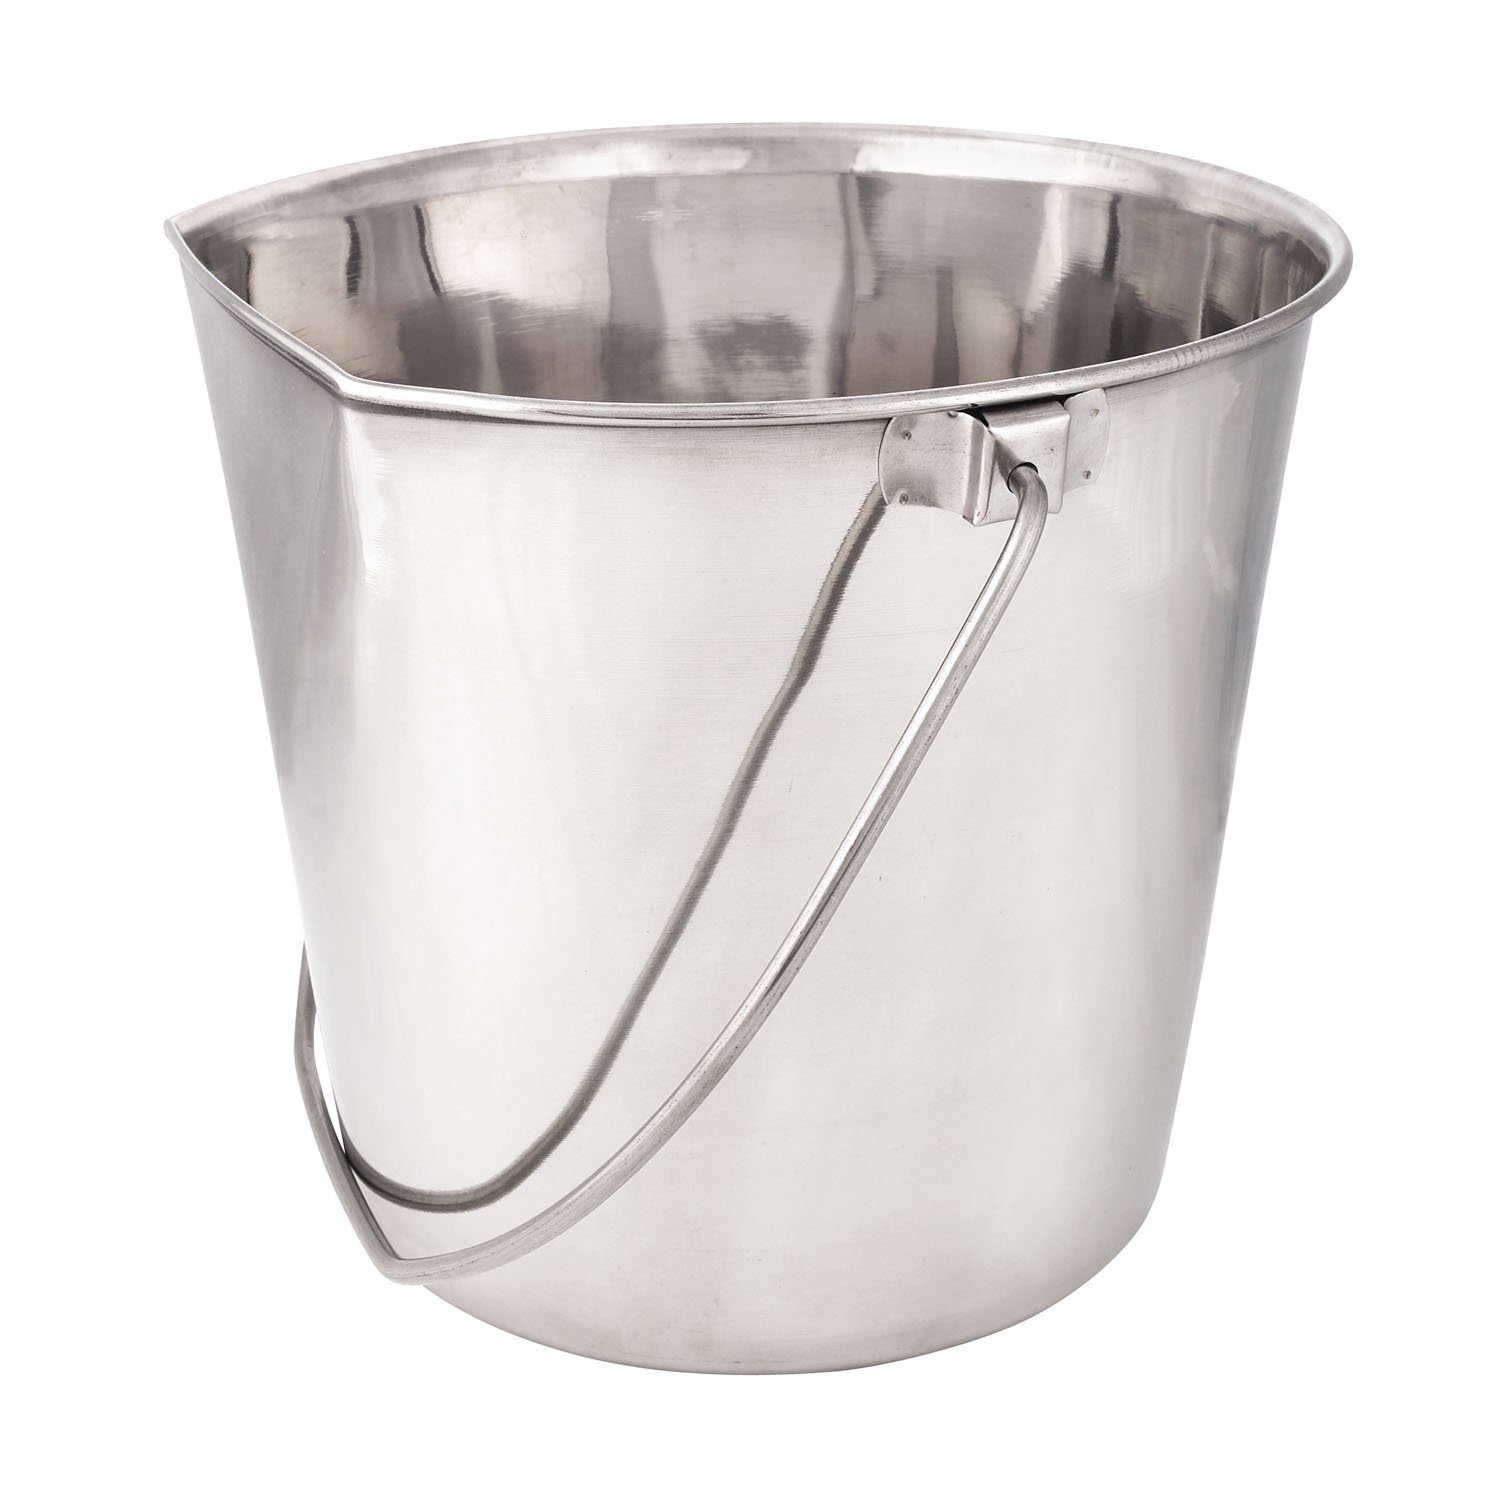 ProSelect Stainless Steel Flat Sided Pails - Durable Pails for Fences, Cages, Crates, or Kennels - 6'', 2-Quart